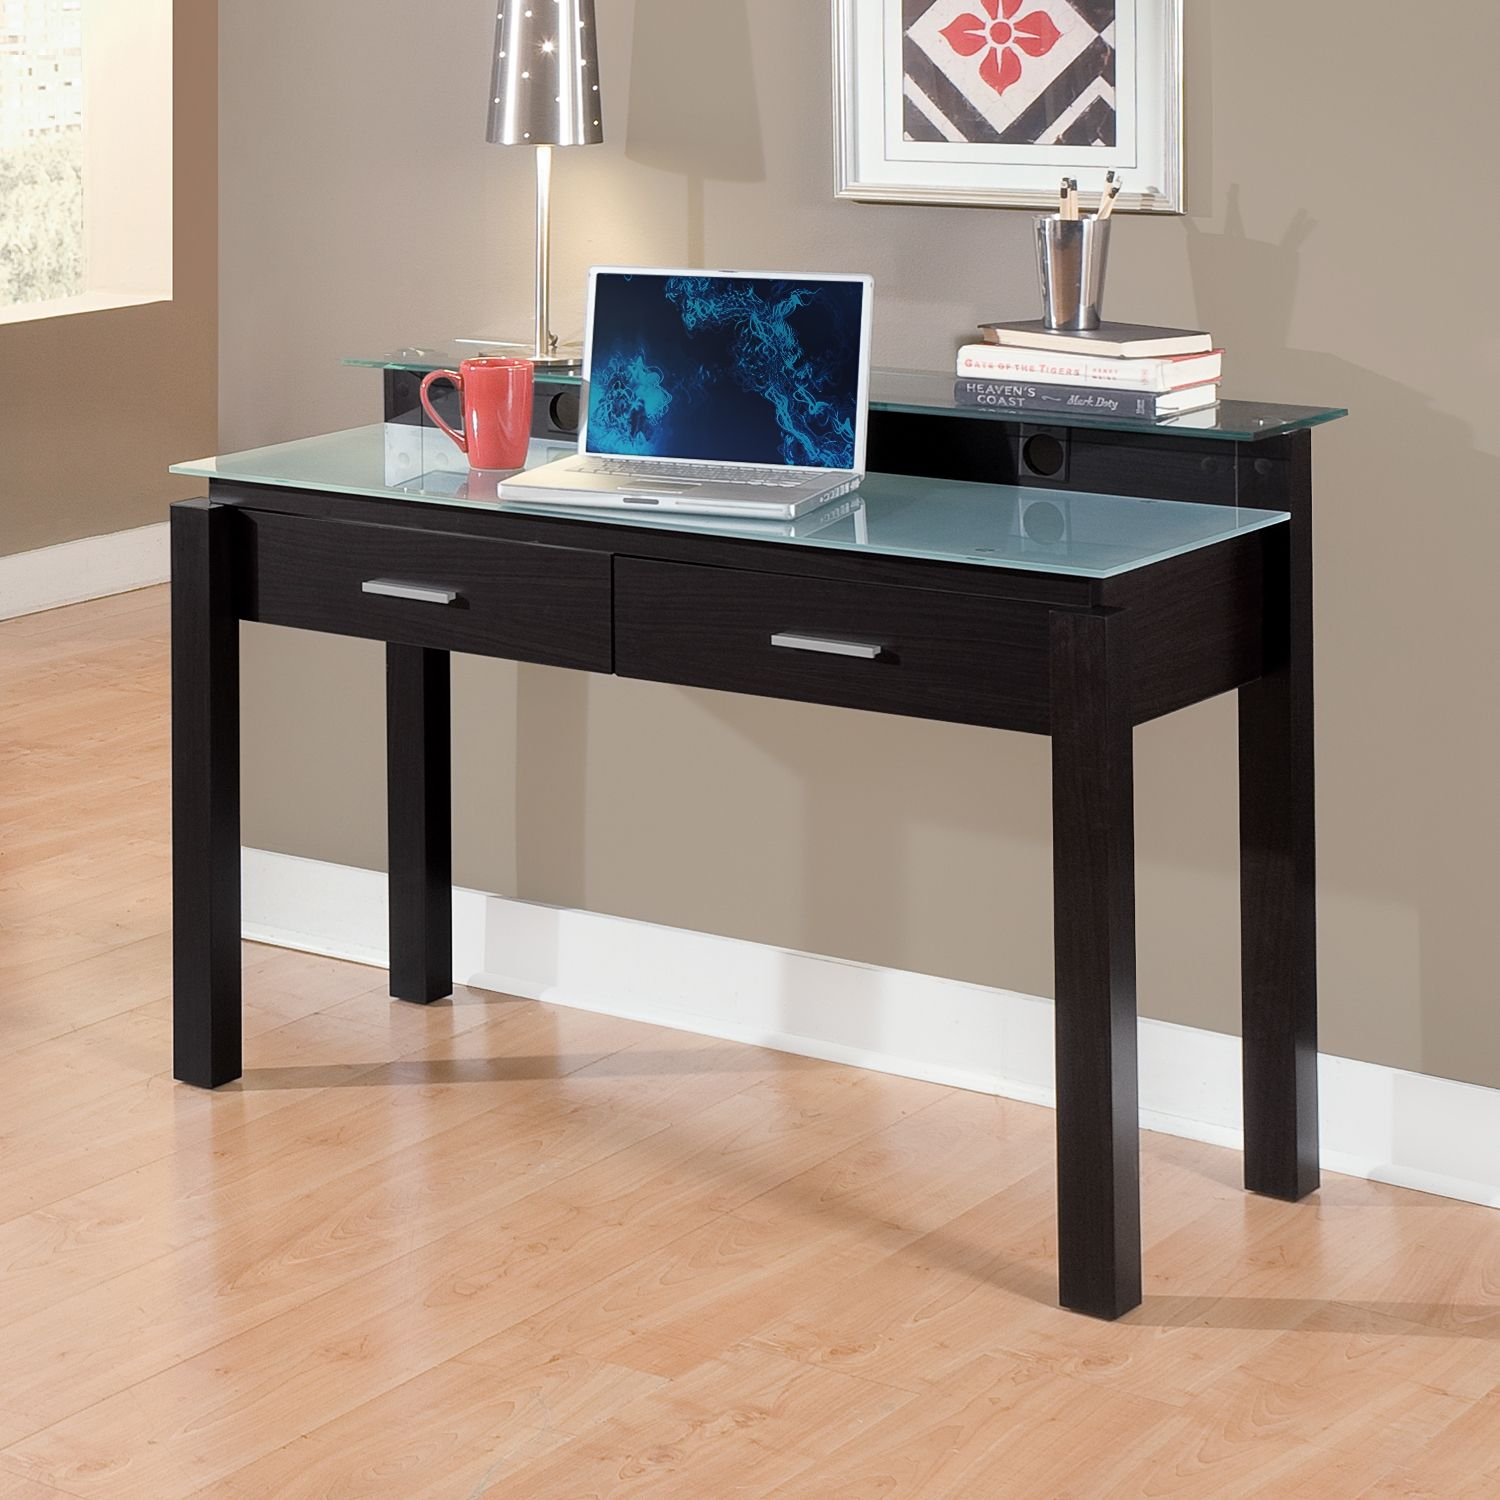 Full Form. Our Crescent Desk Is Just The Thing To Complete